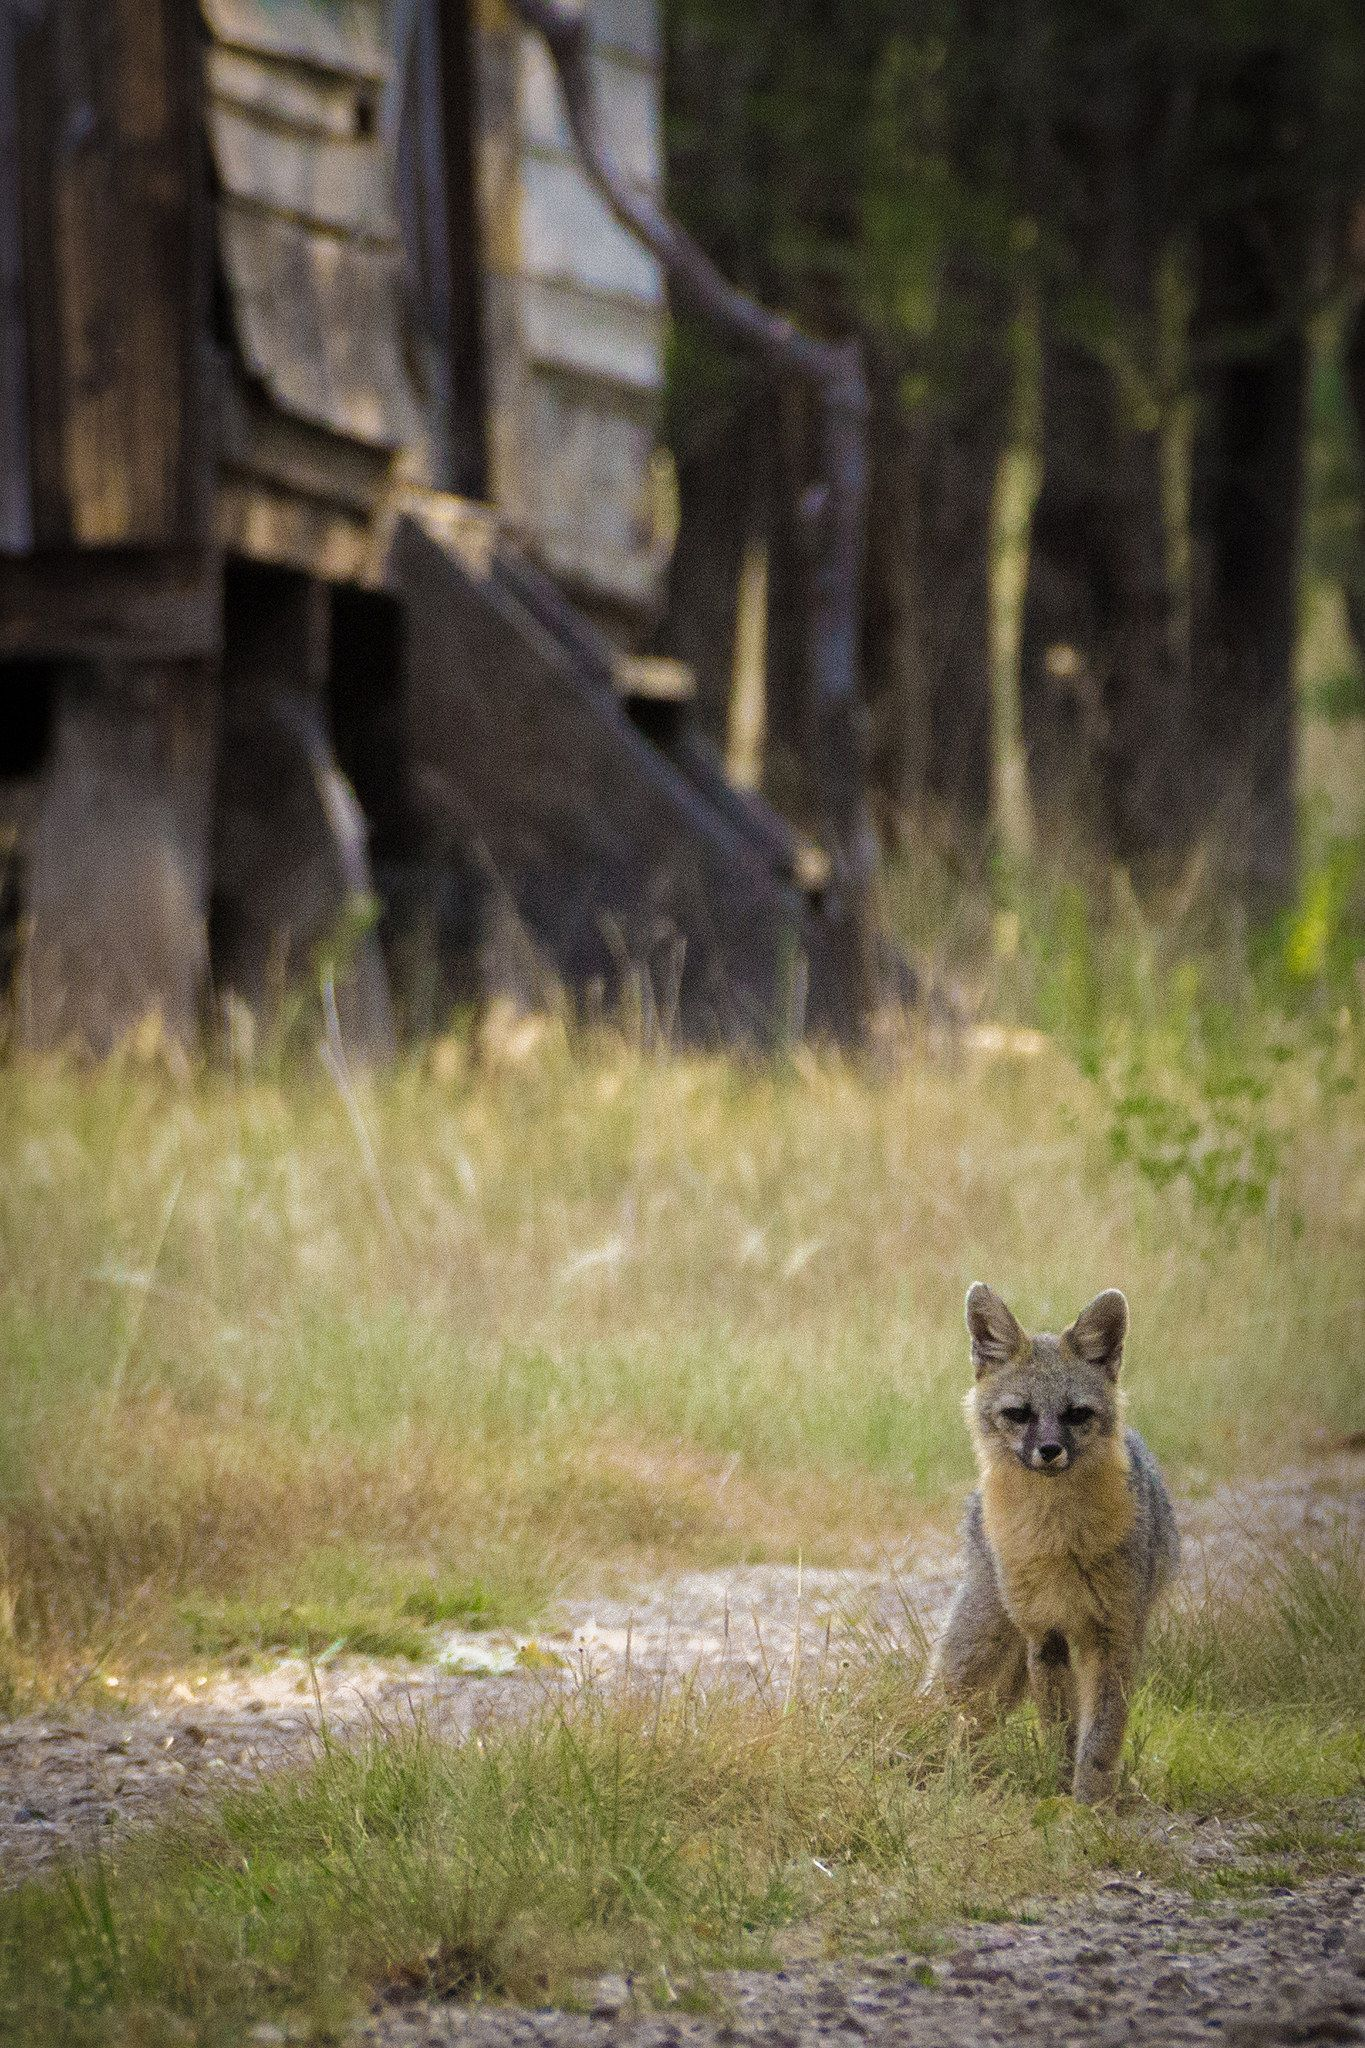 Images coyotes and coyotes hunting in tandem by matt knoth via - Dog